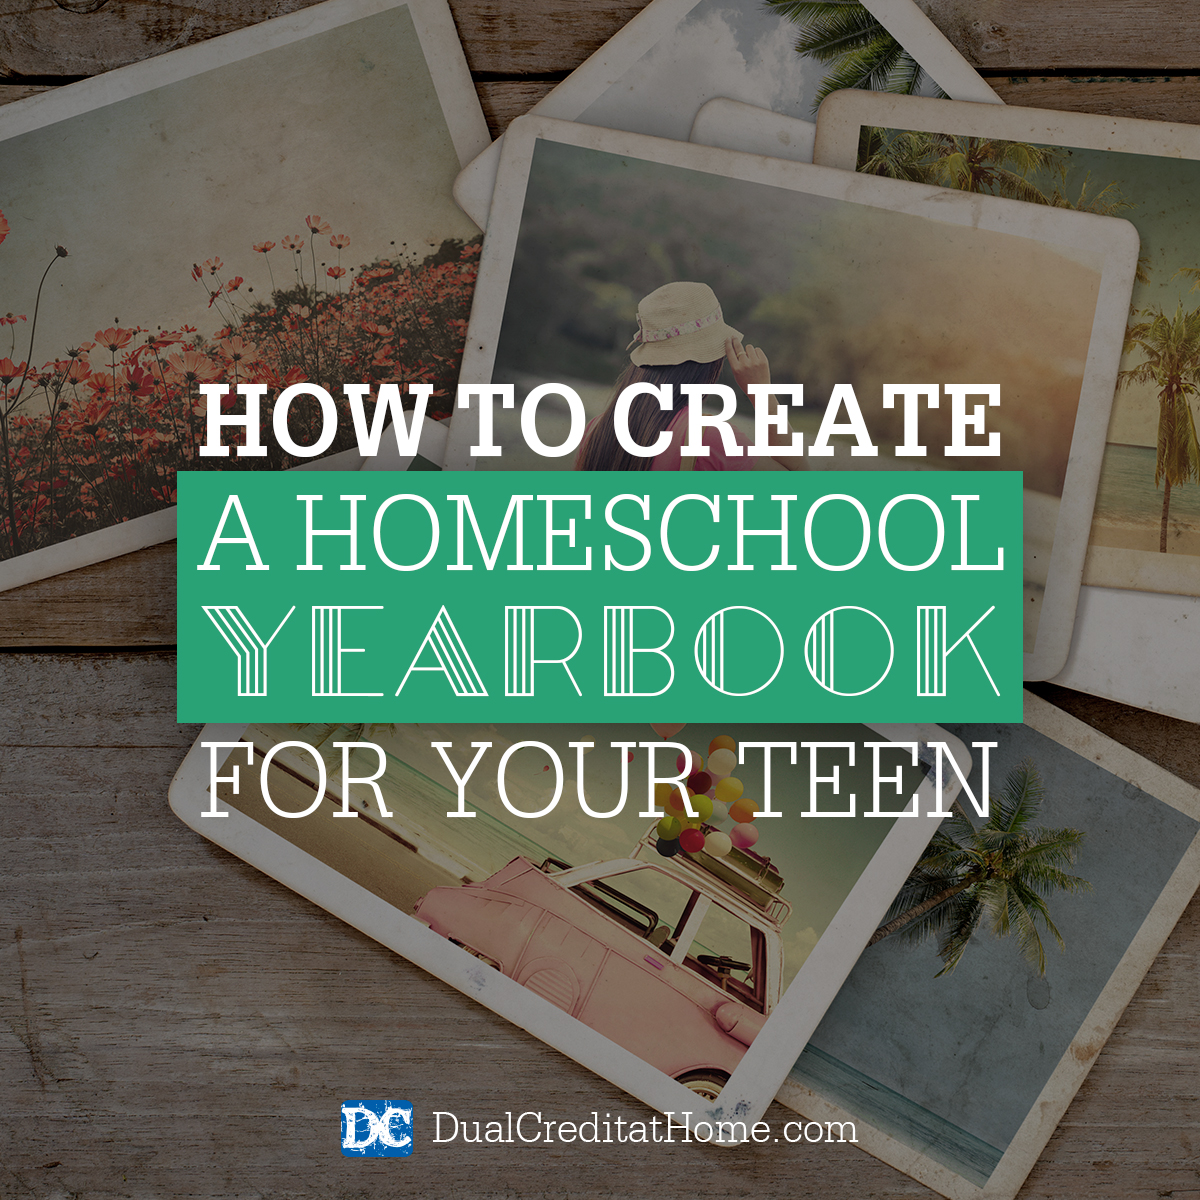 How to Create a Homeschool Yearbook for Your Teen